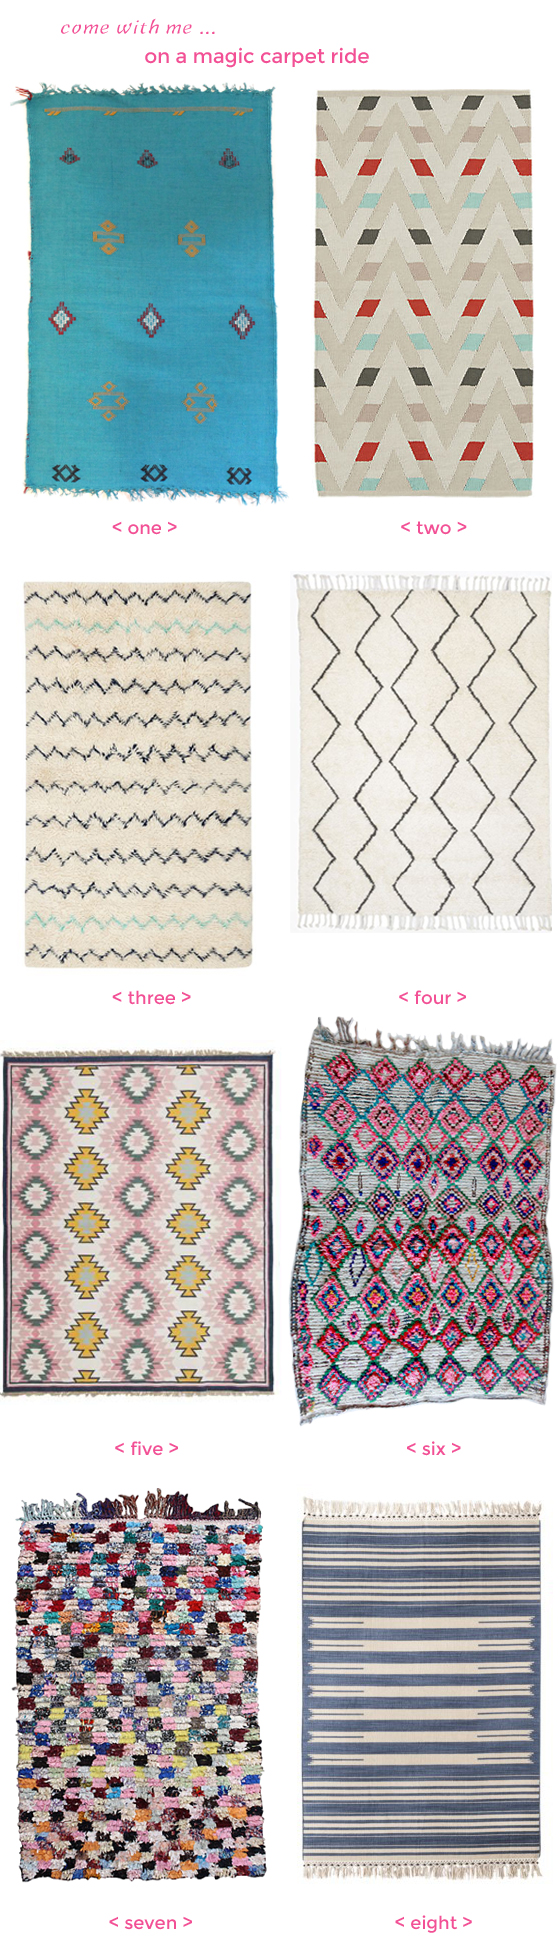 roundup of pretty rugs | Burritos & Bubbly